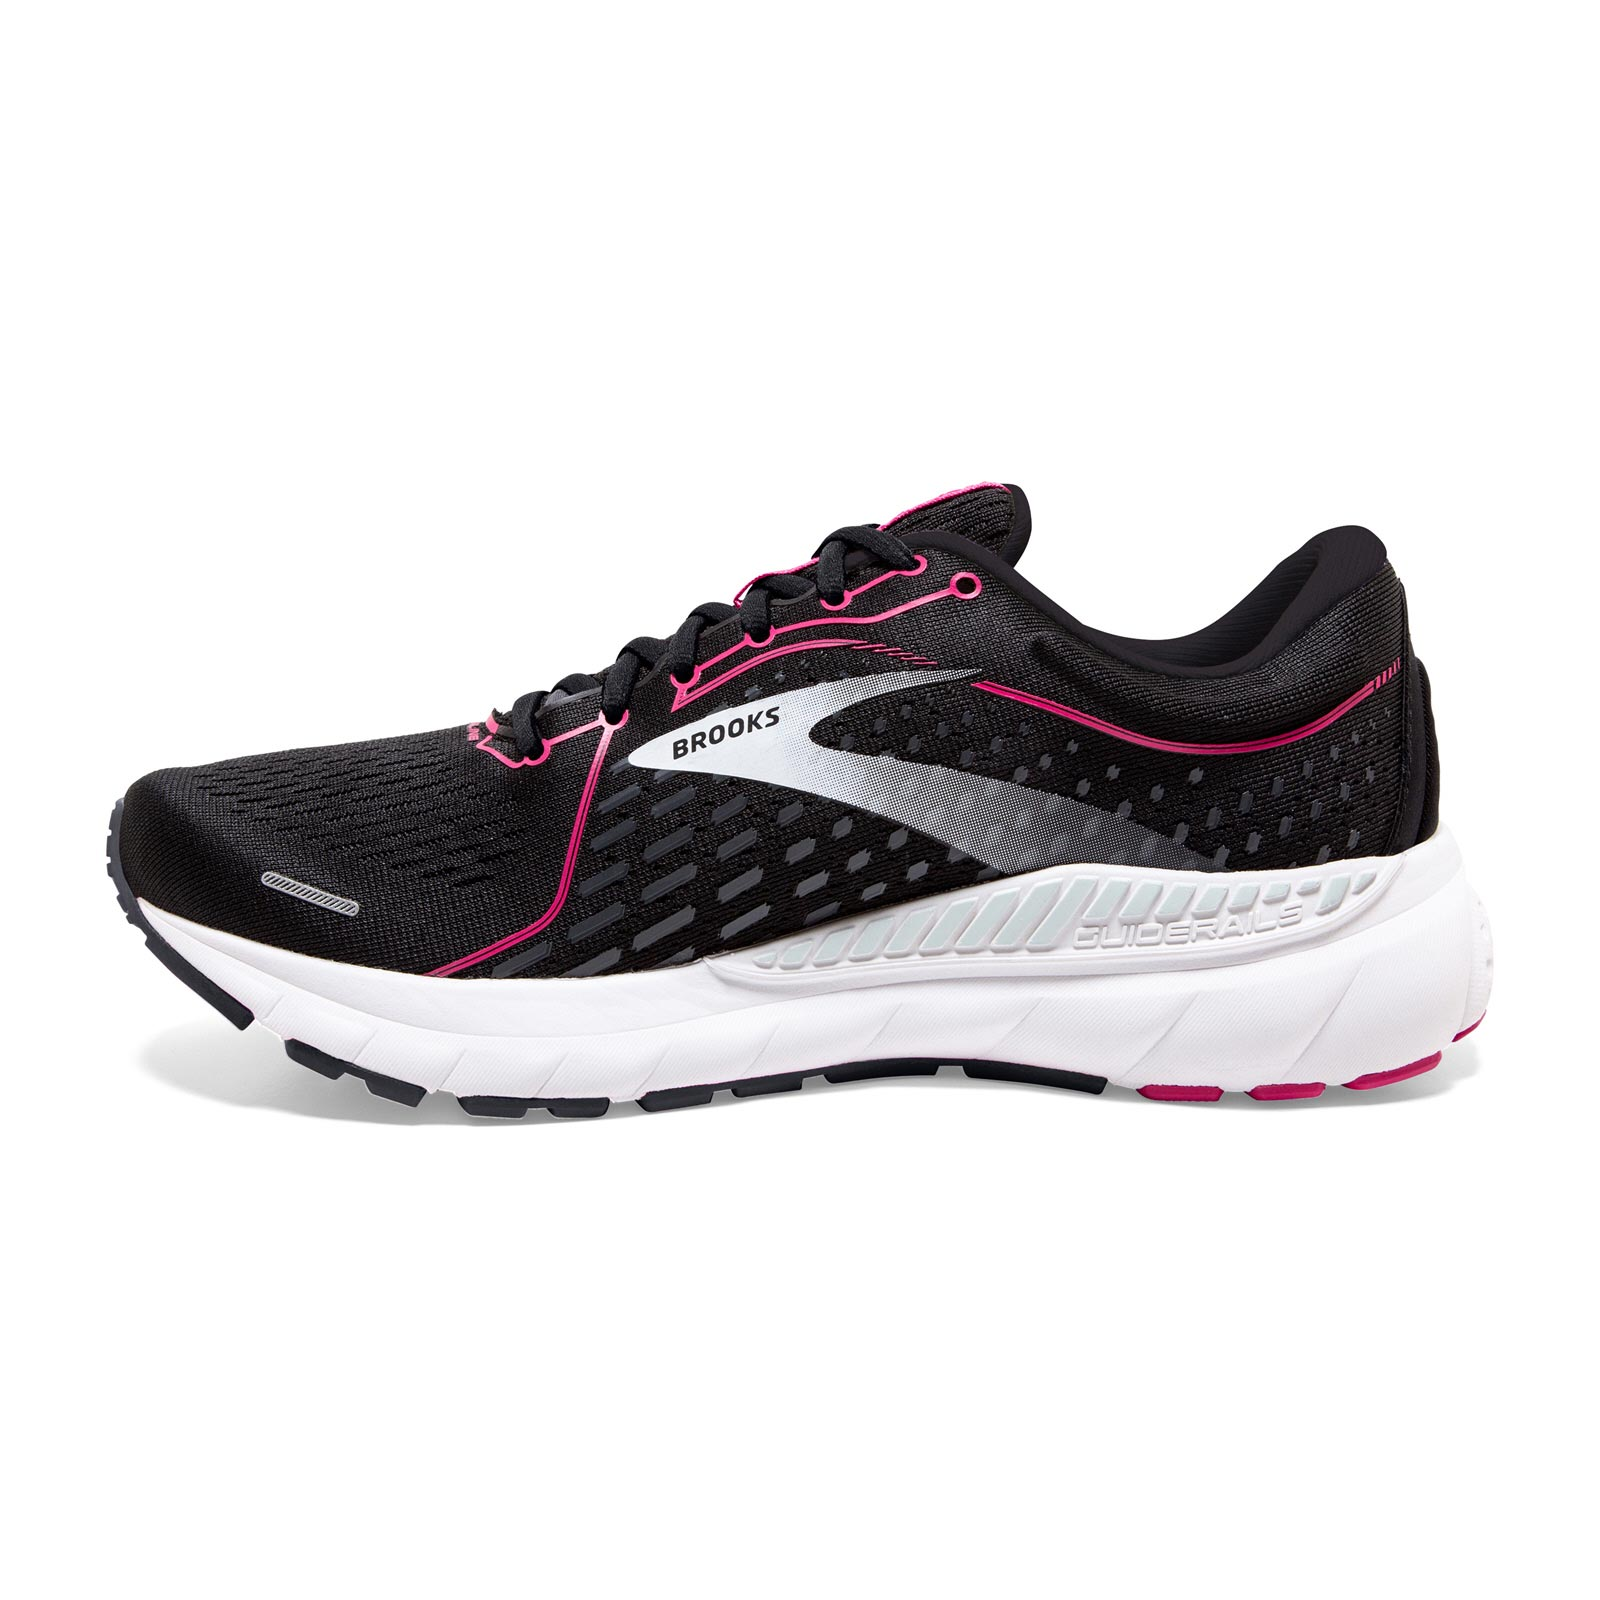 ALL BLACK ALL SIZES NEW MENS BROOKS ADRENALINE GTS 21-4E WIDE-FIT